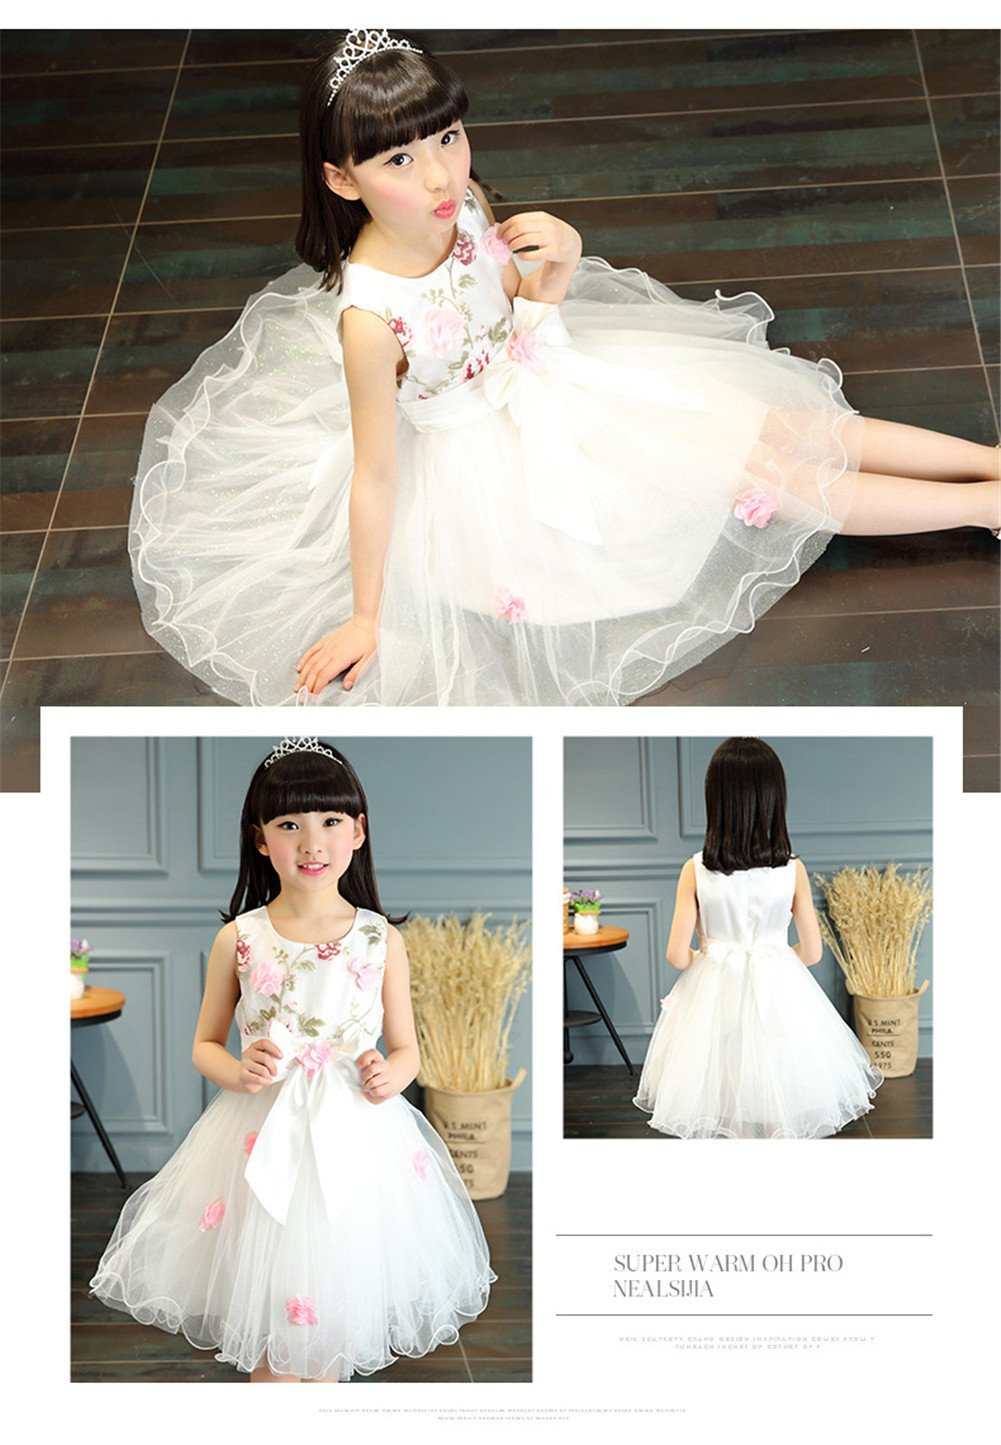 FTSUCQ Girls Floral Printed Bowknot Twirling Princess Dress (120(6-7Y), White) by Dillian Dress (Image #3)